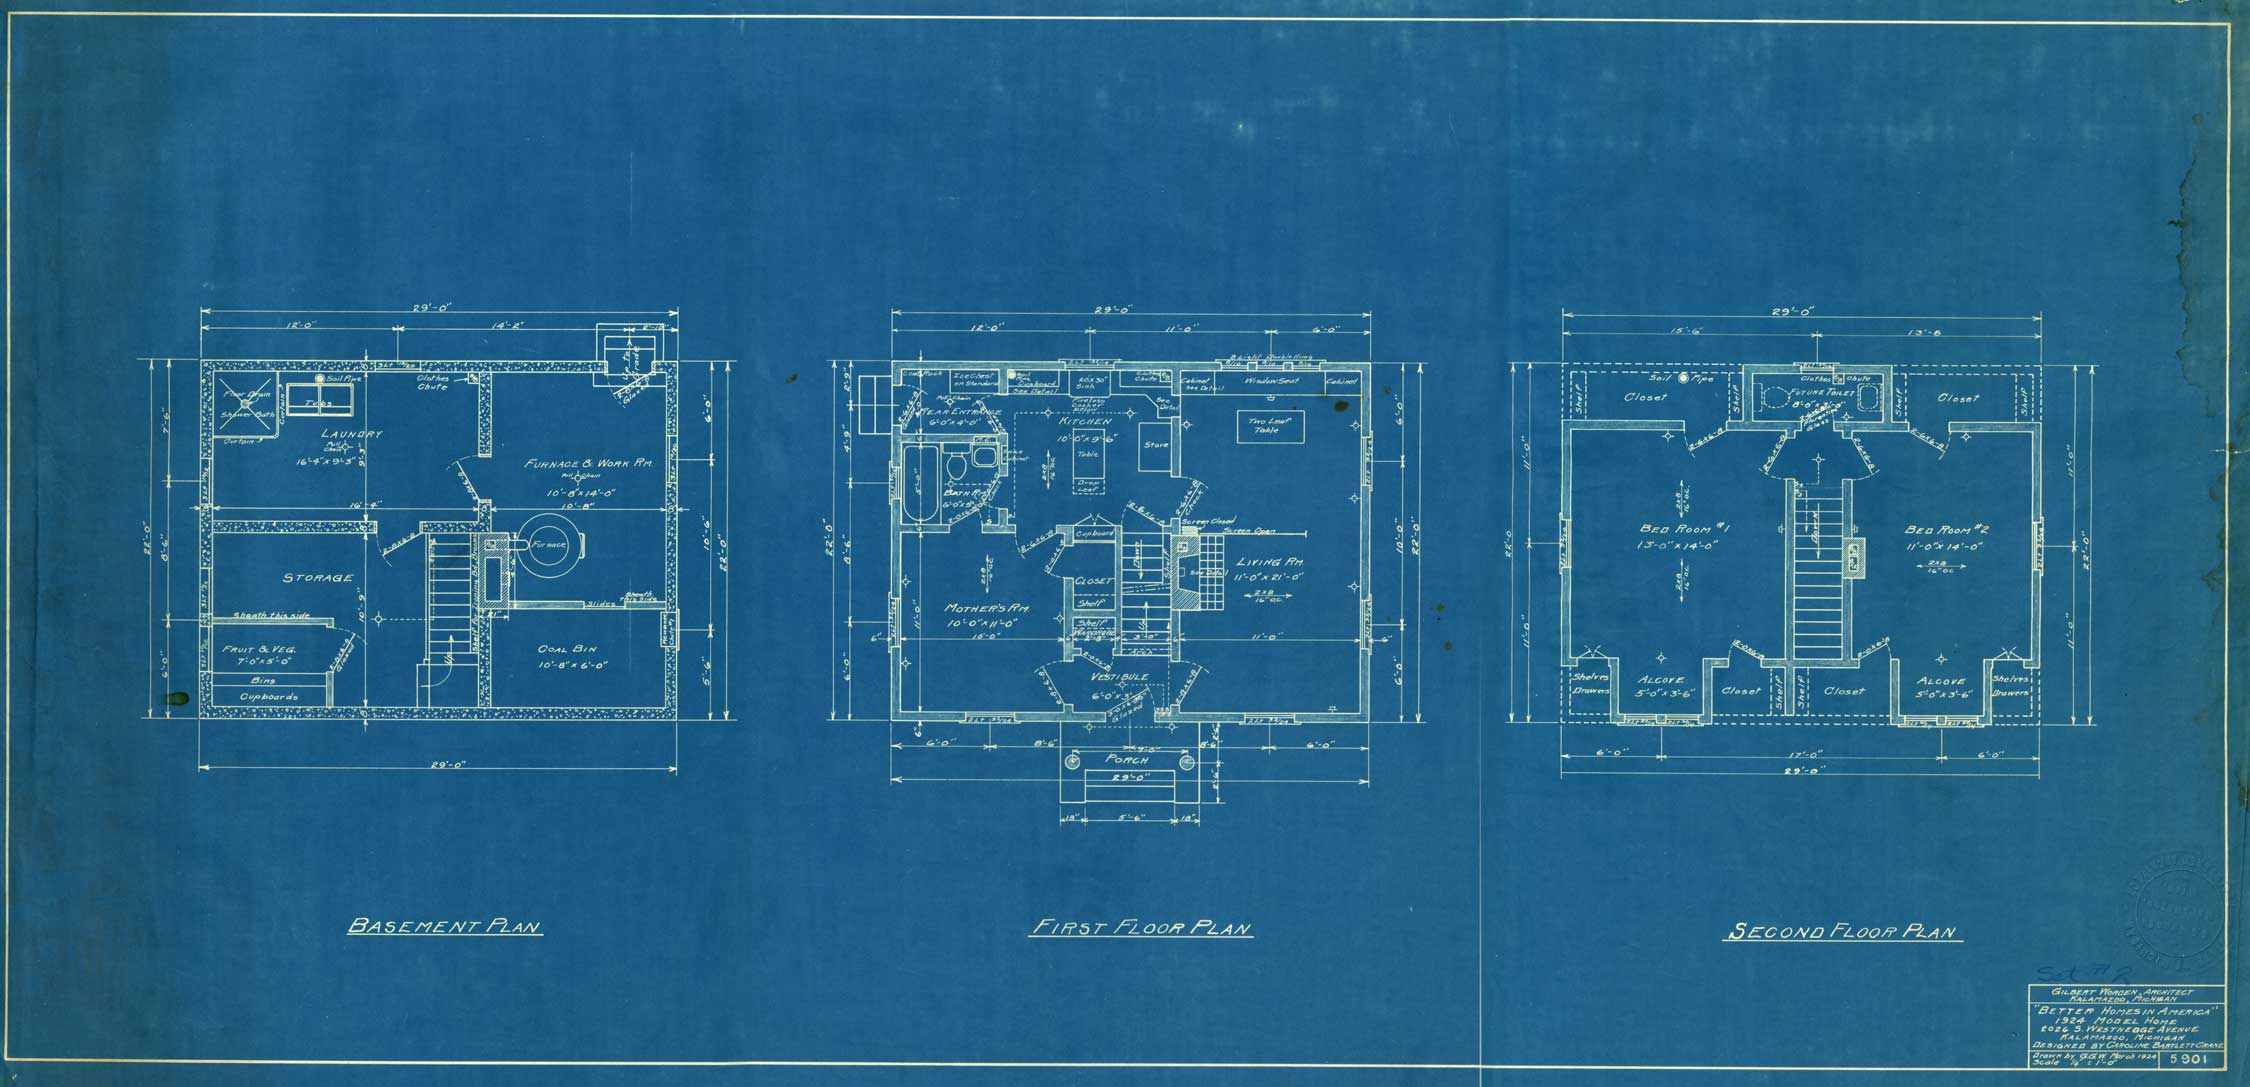 The making of modern michigan digitizing michigans hidden past floor plans blueprint architectural drawing malvernweather Gallery